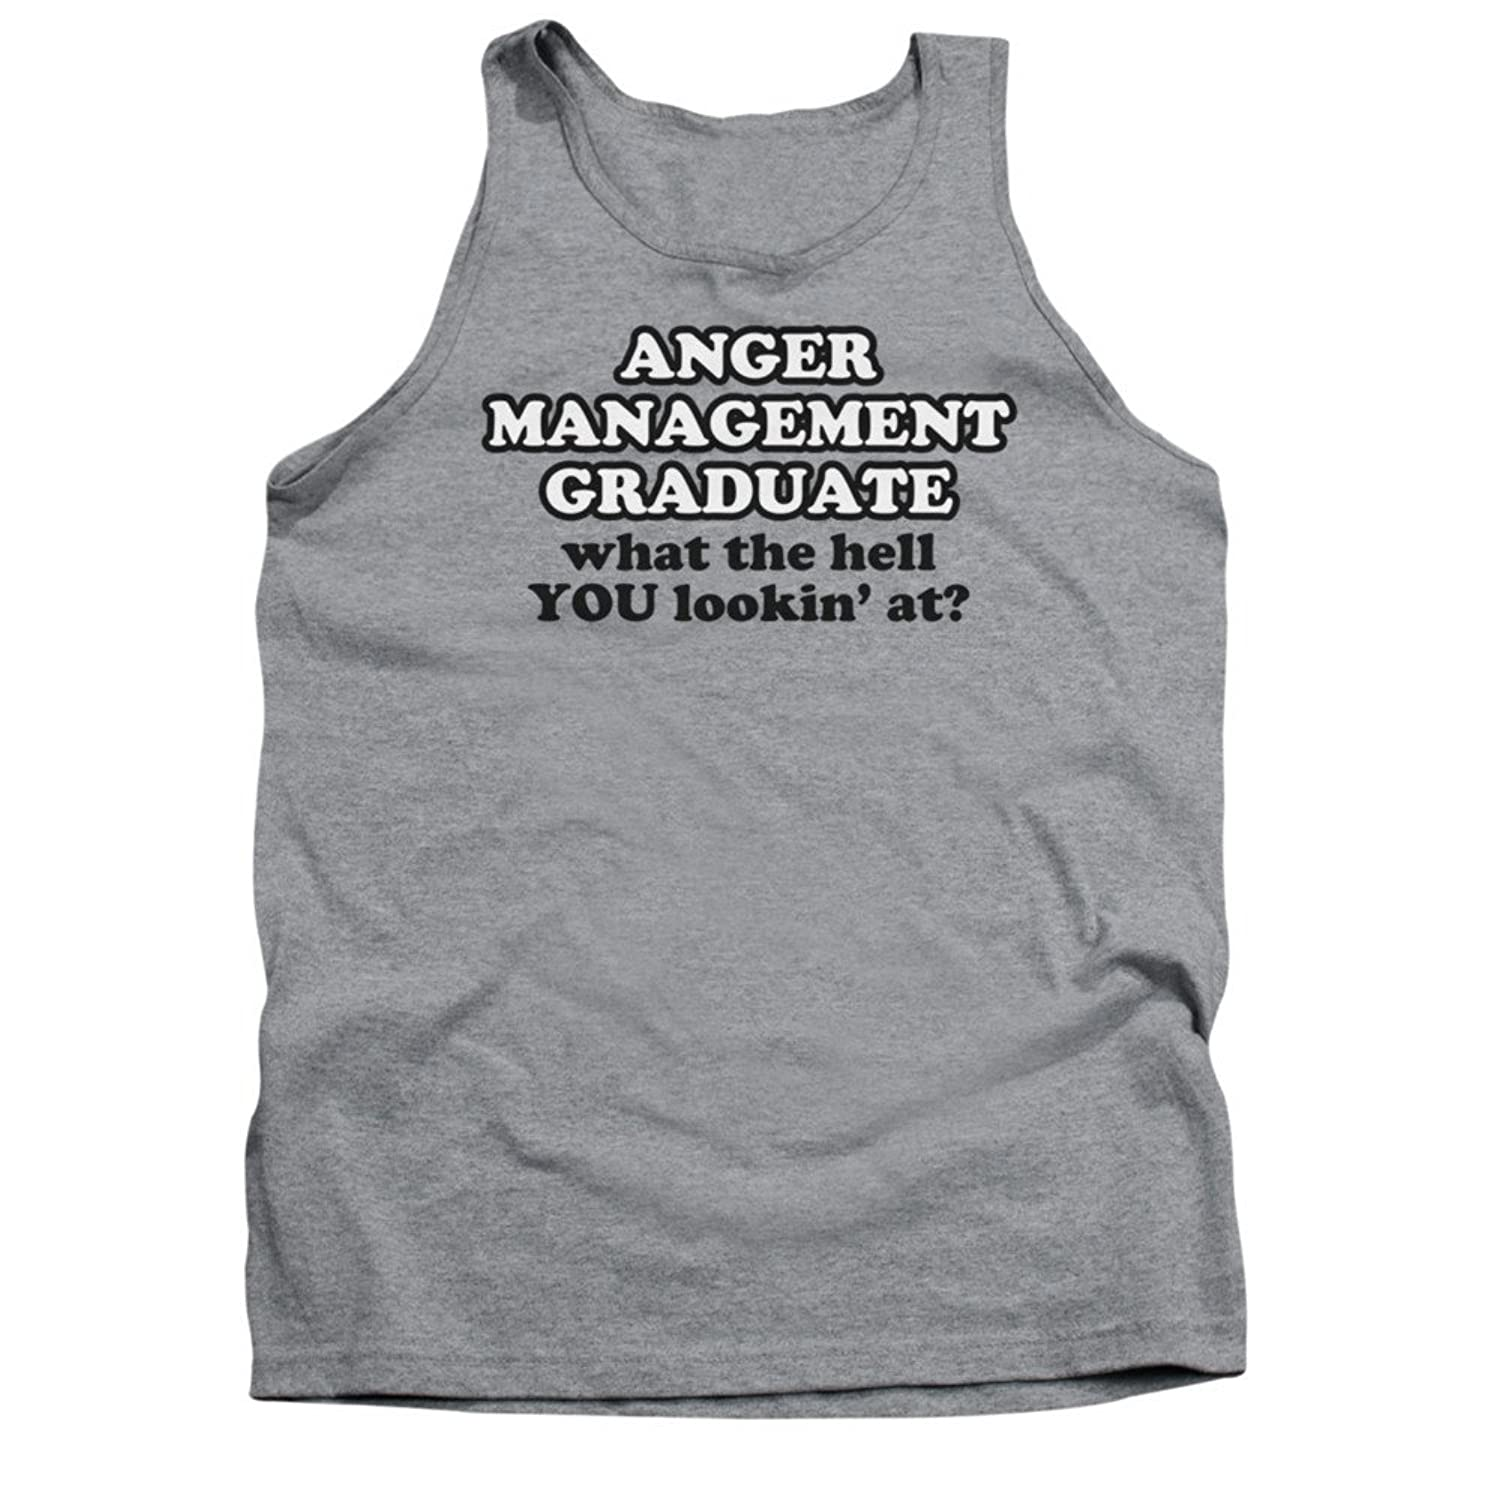 Anger Management Graduate What The Hell You Lookin' At? Saying Adult Tank Shirt